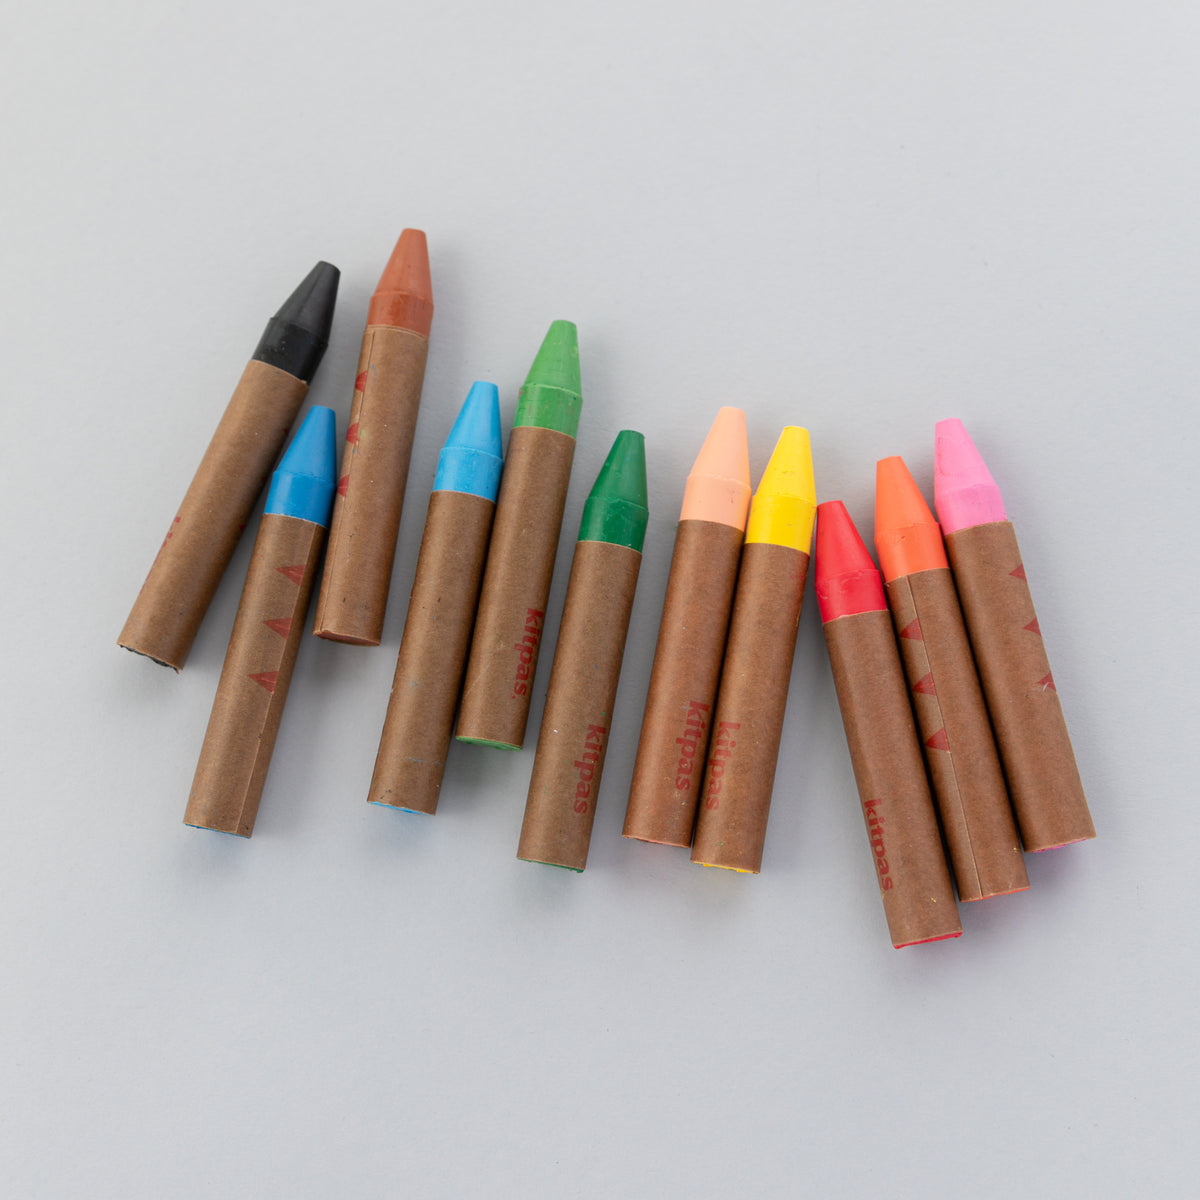 Kitpas Large Art Stick Crayons - 12 colors